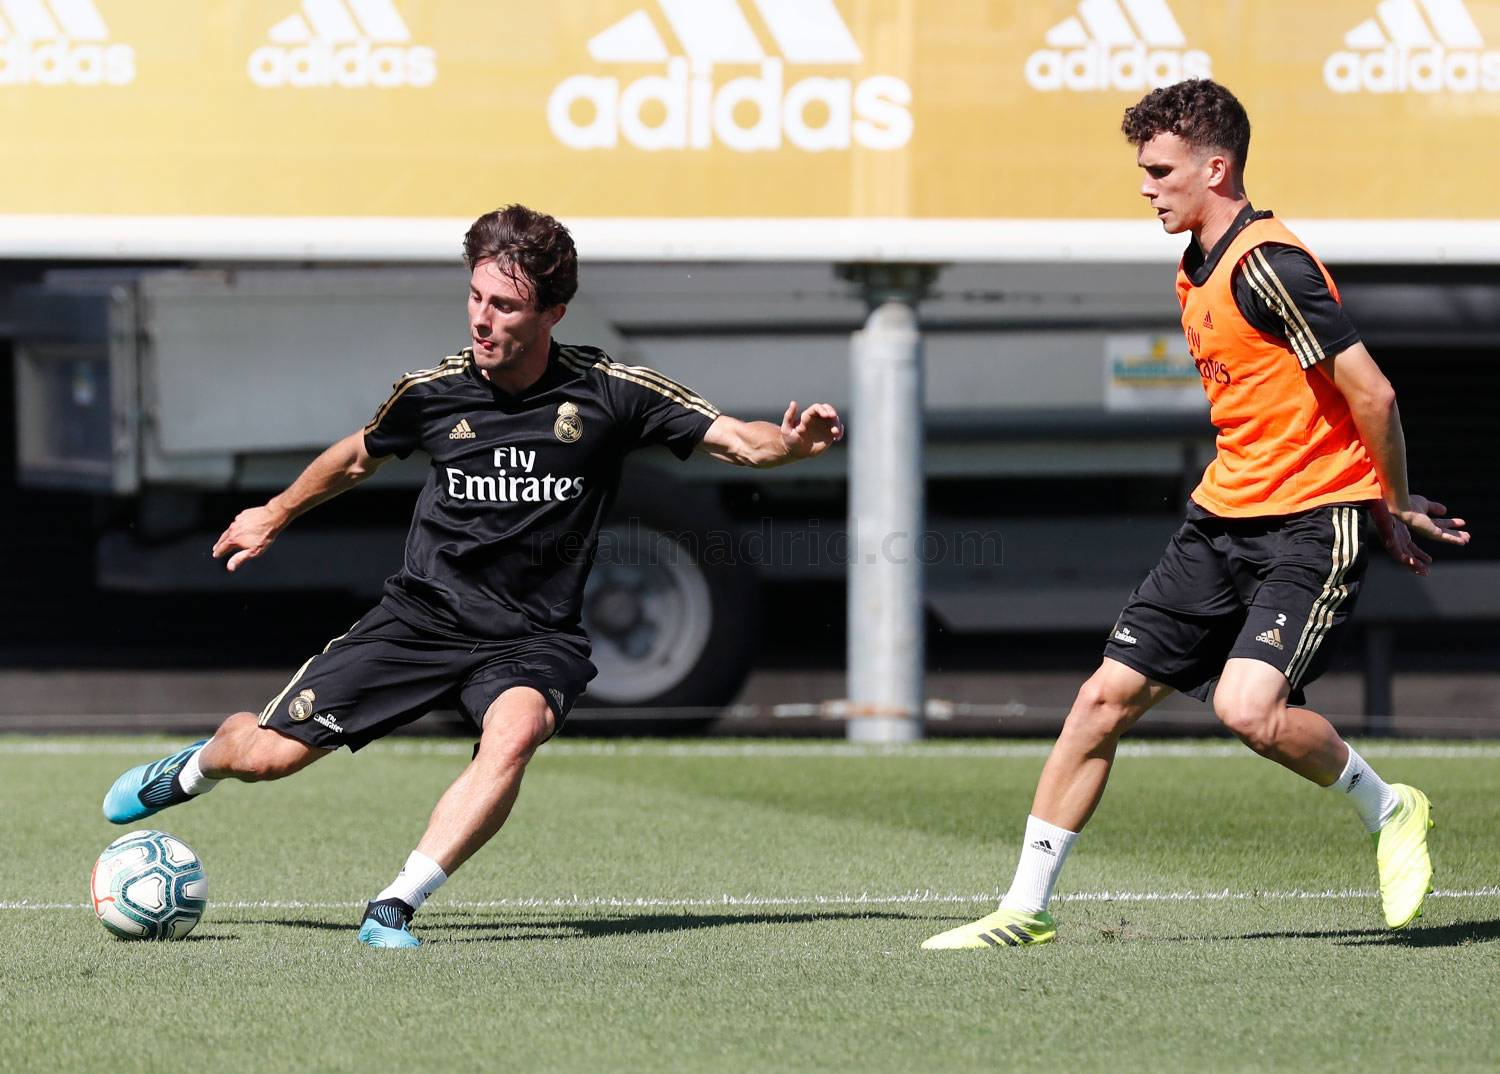 Real Madrid - Entrenamiento del Real Madrid  - 05-09-2019